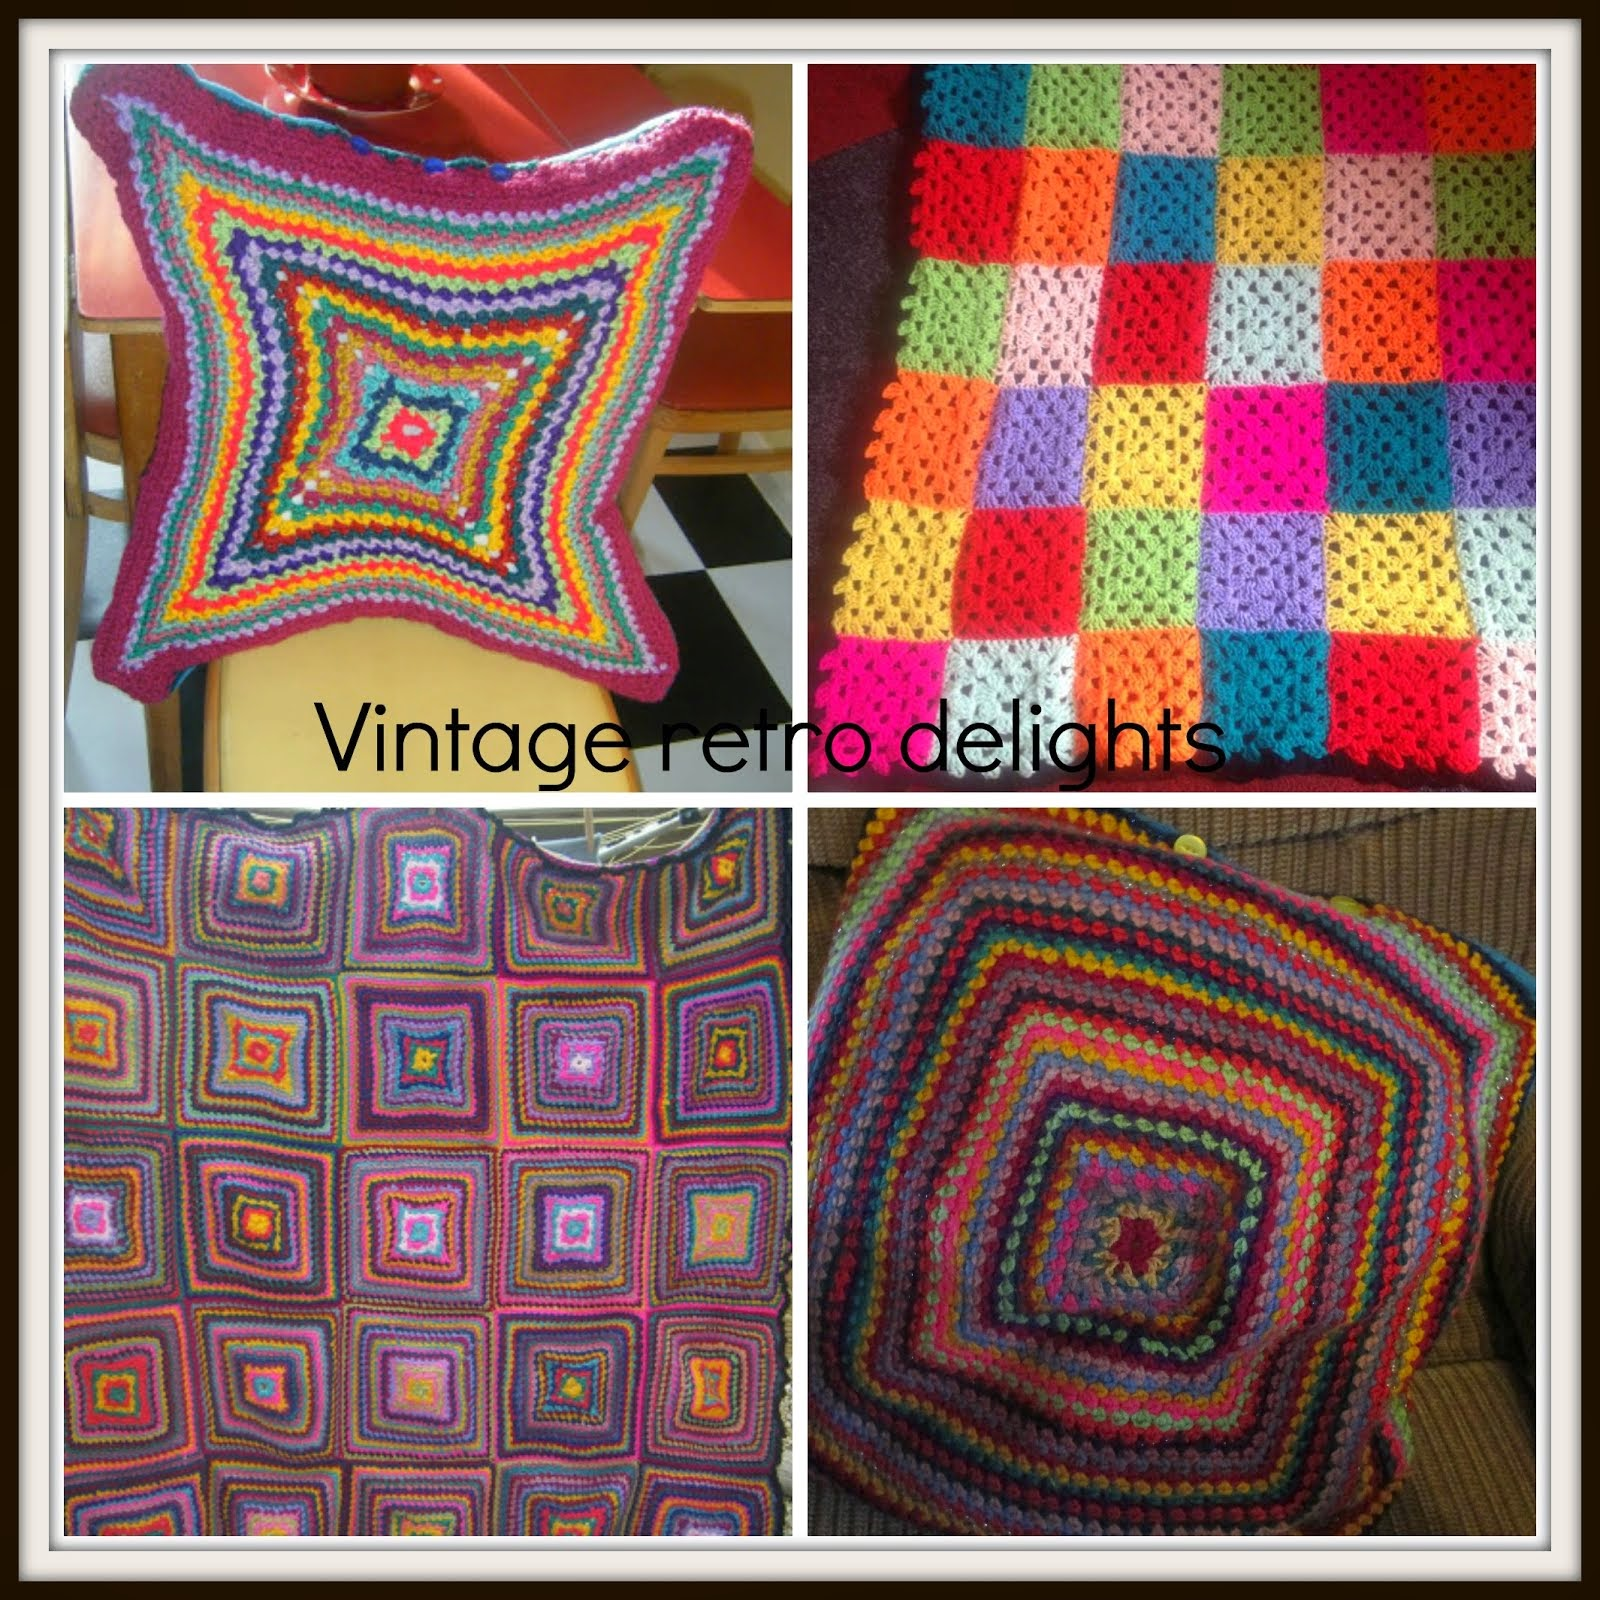 My favourite crochet projects